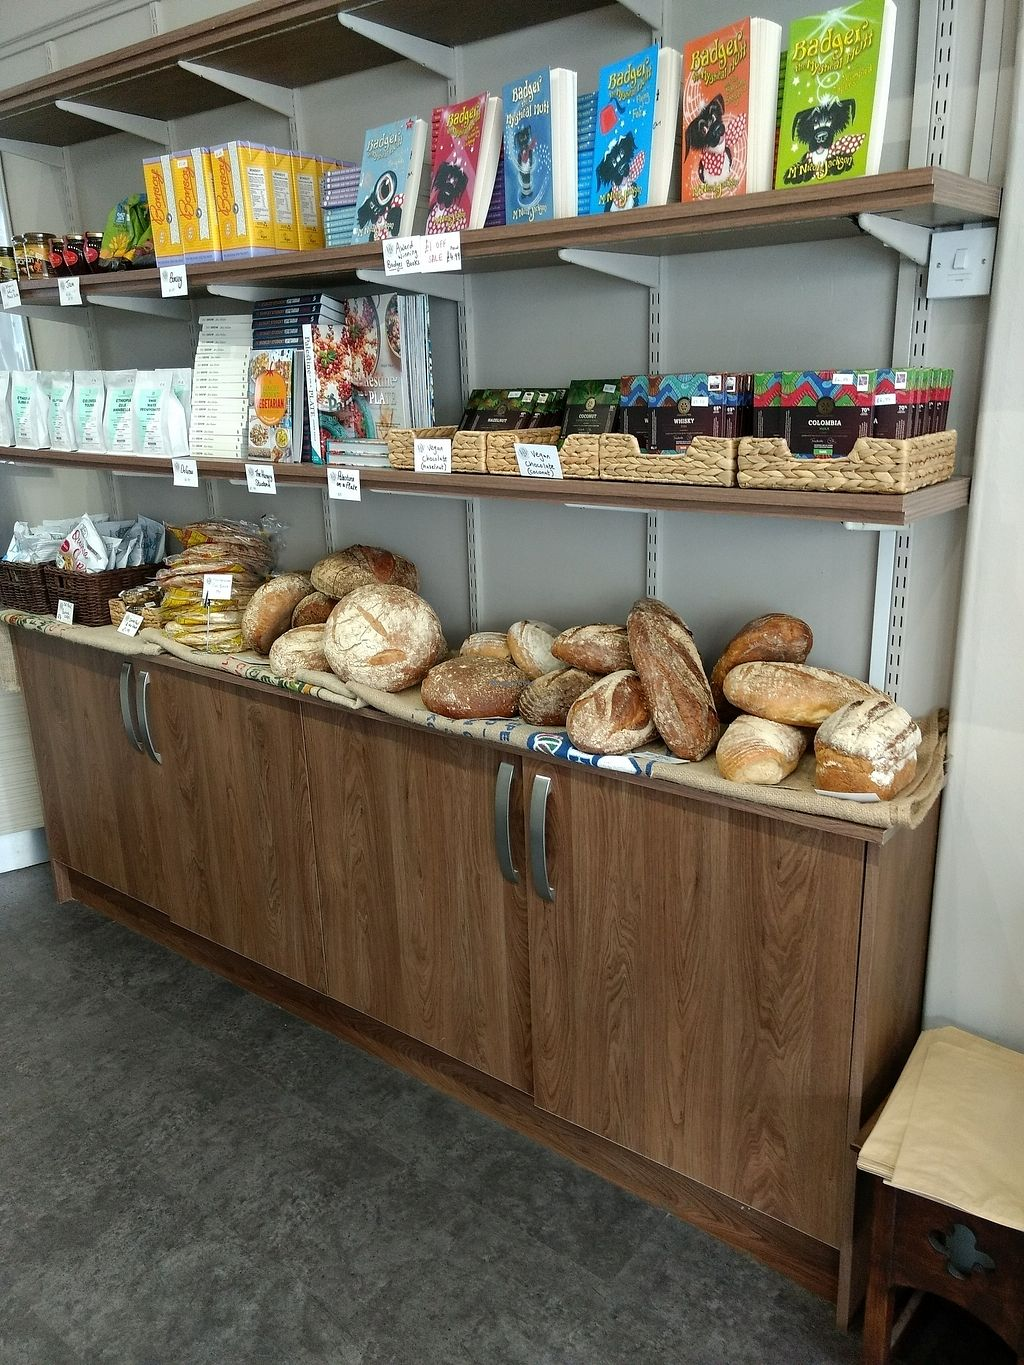 """Photo of The V & V Cafe  by <a href=""""/members/profile/craigmc"""">craigmc</a> <br/>breads <br/> August 5, 2017  - <a href='/contact/abuse/image/87908/289003'>Report</a>"""